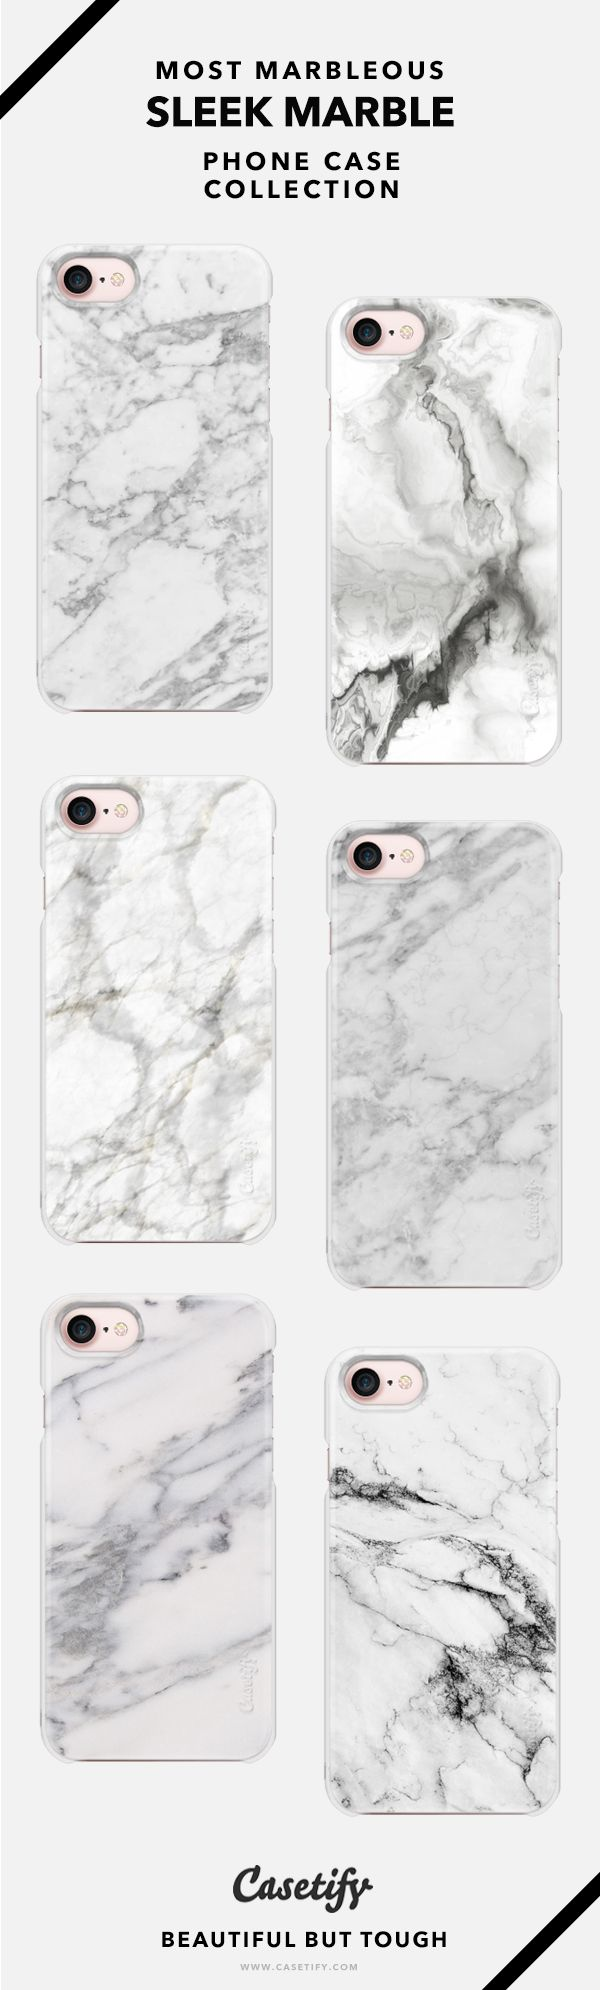 Sleekest Marble & Minimalist Phone Case Collection - iPhone 6/6s/7/7+ AND MORE! Shop them here ☝️☝️☝️ BEAUTIFUL BUT TOUGH ✨ - Marble, Minimal, White, Monochrome, Design, Art, Popular, Patterns, Black and White